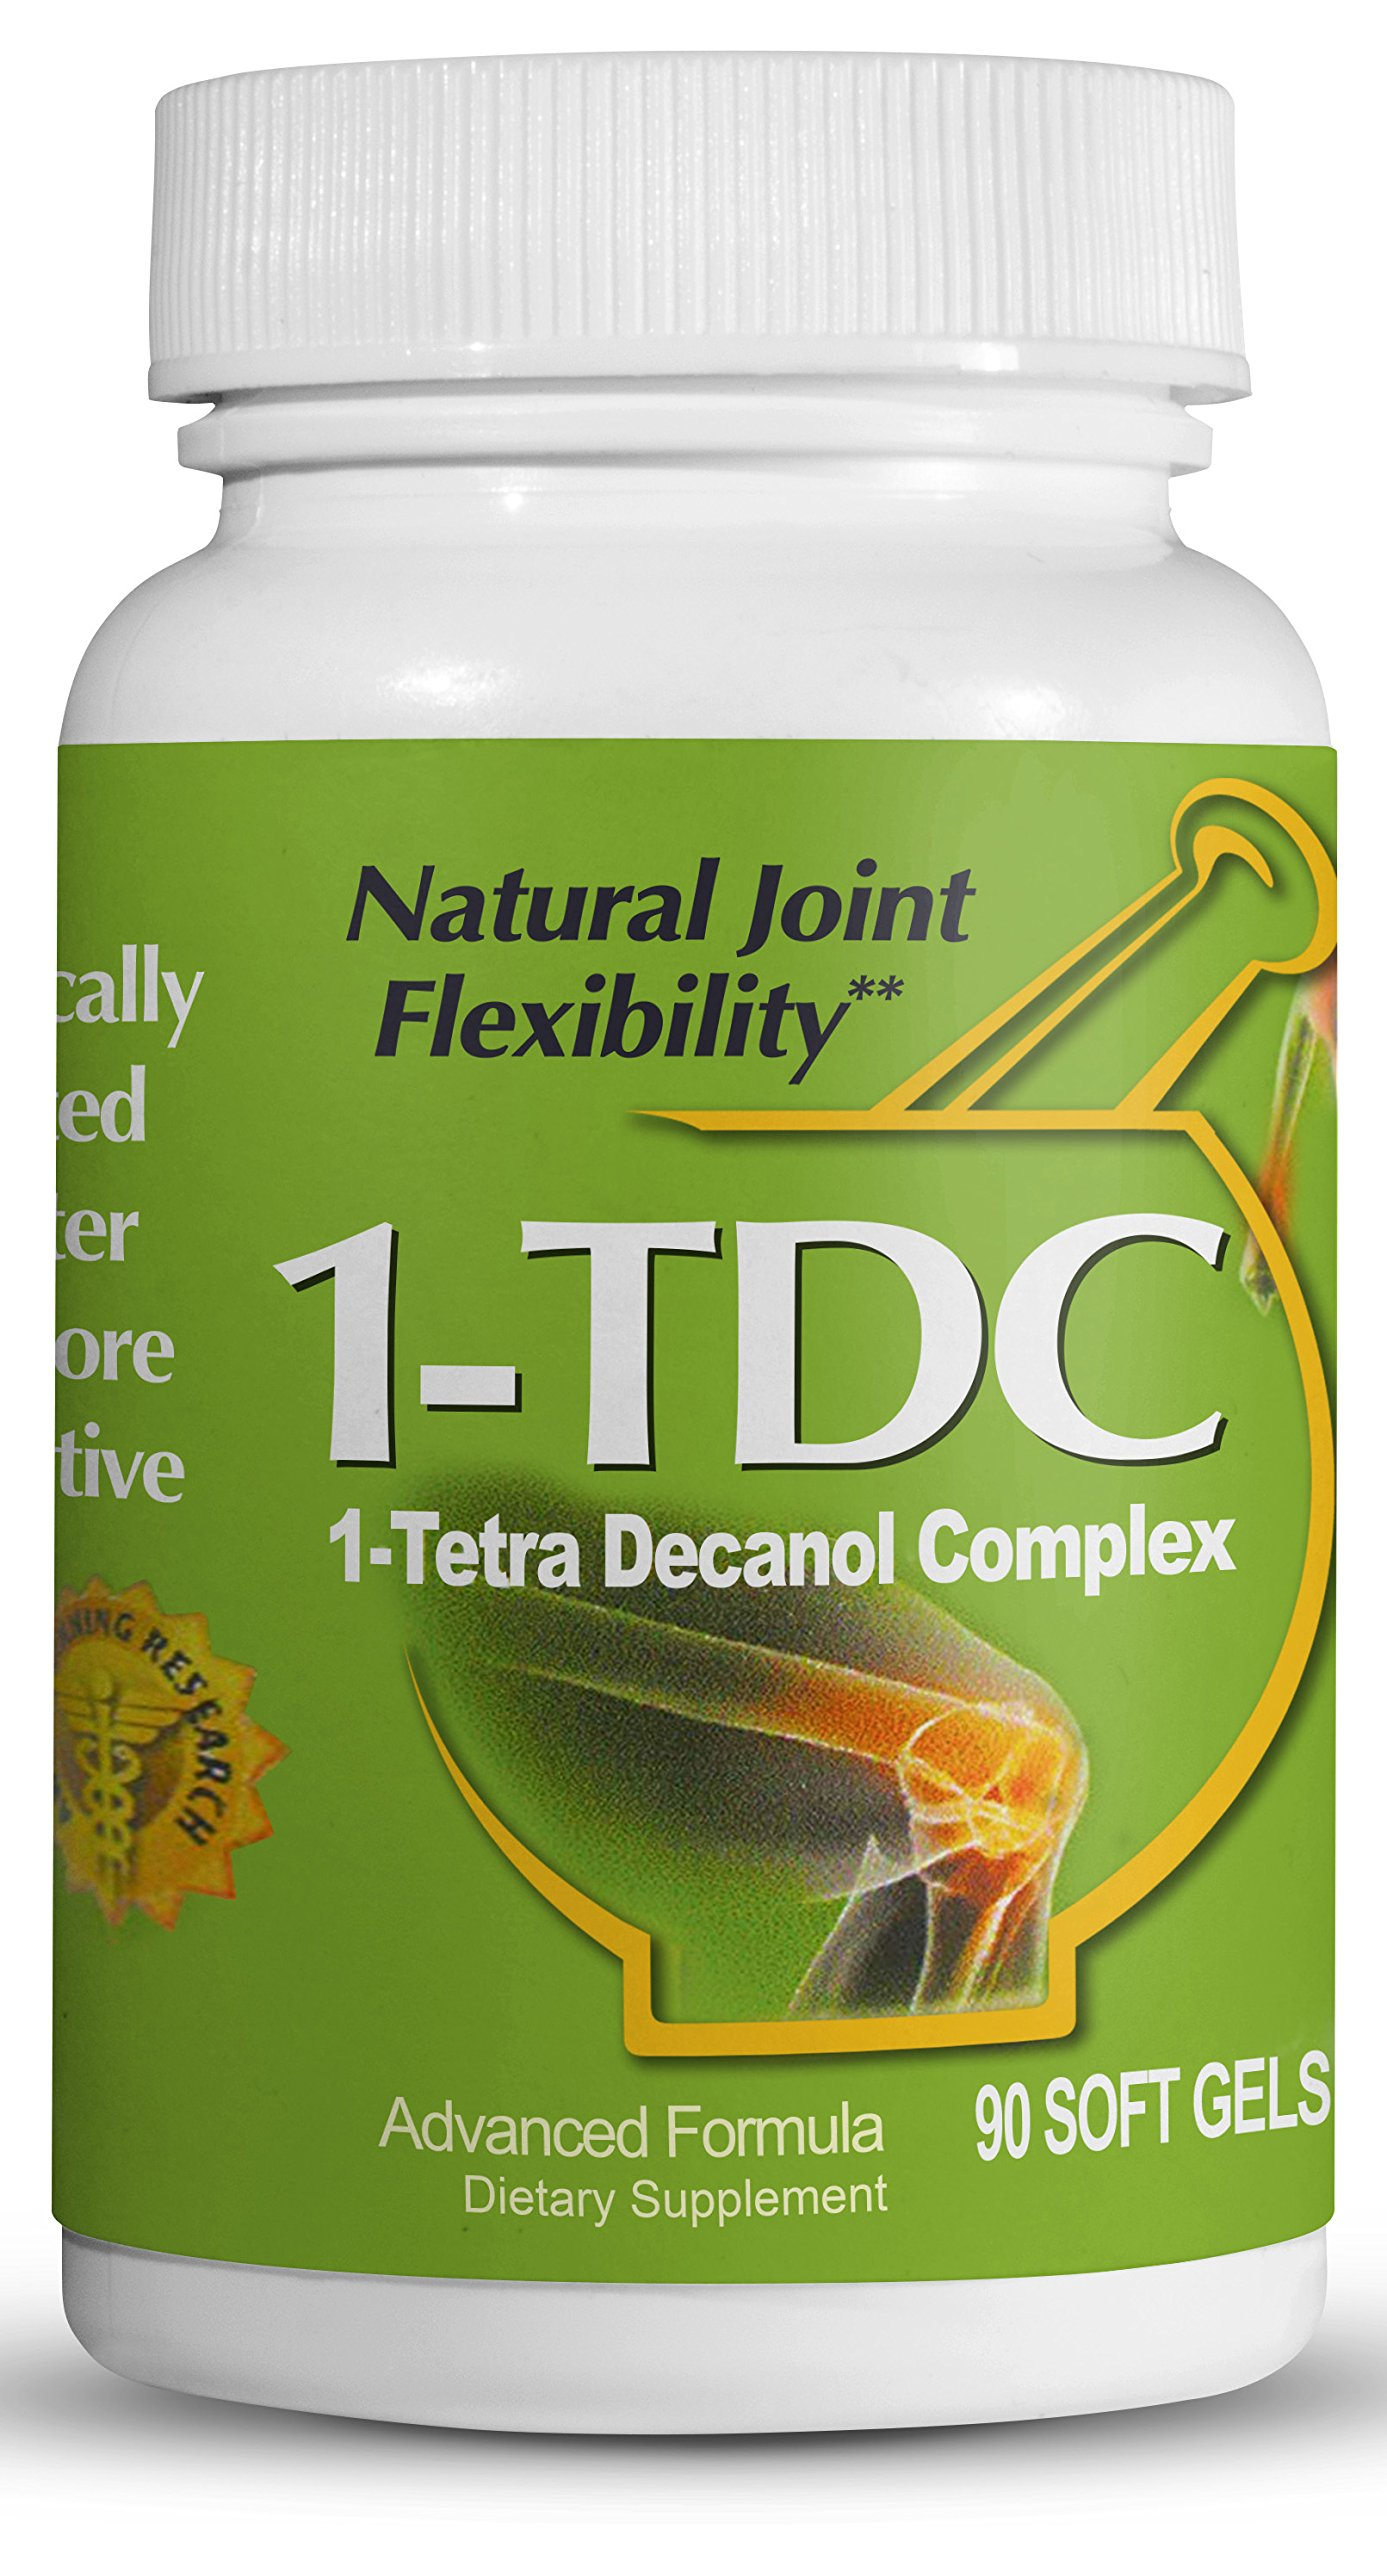 1TDC – Joint & Muscle Health – 90 Soft Gels | Formulated to Provide Complete Body Relief | Enhanced with 1-TetraDecanol Complex to Promote Natural Joint Flexibility | Safe & Effective by 1-TDC